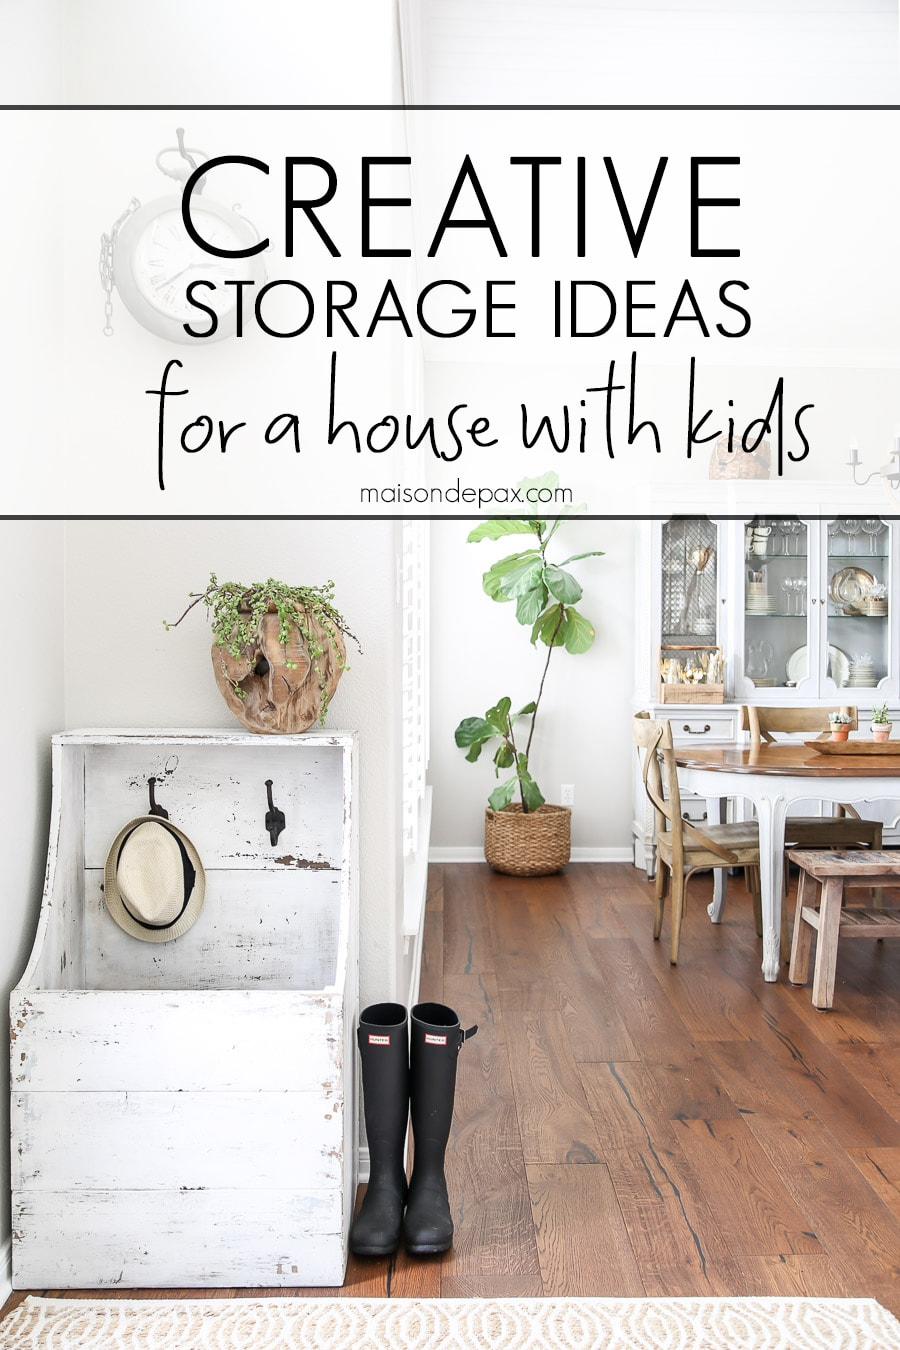 10 Kids Storage Ideas: Organizing tips for a house with kids ...